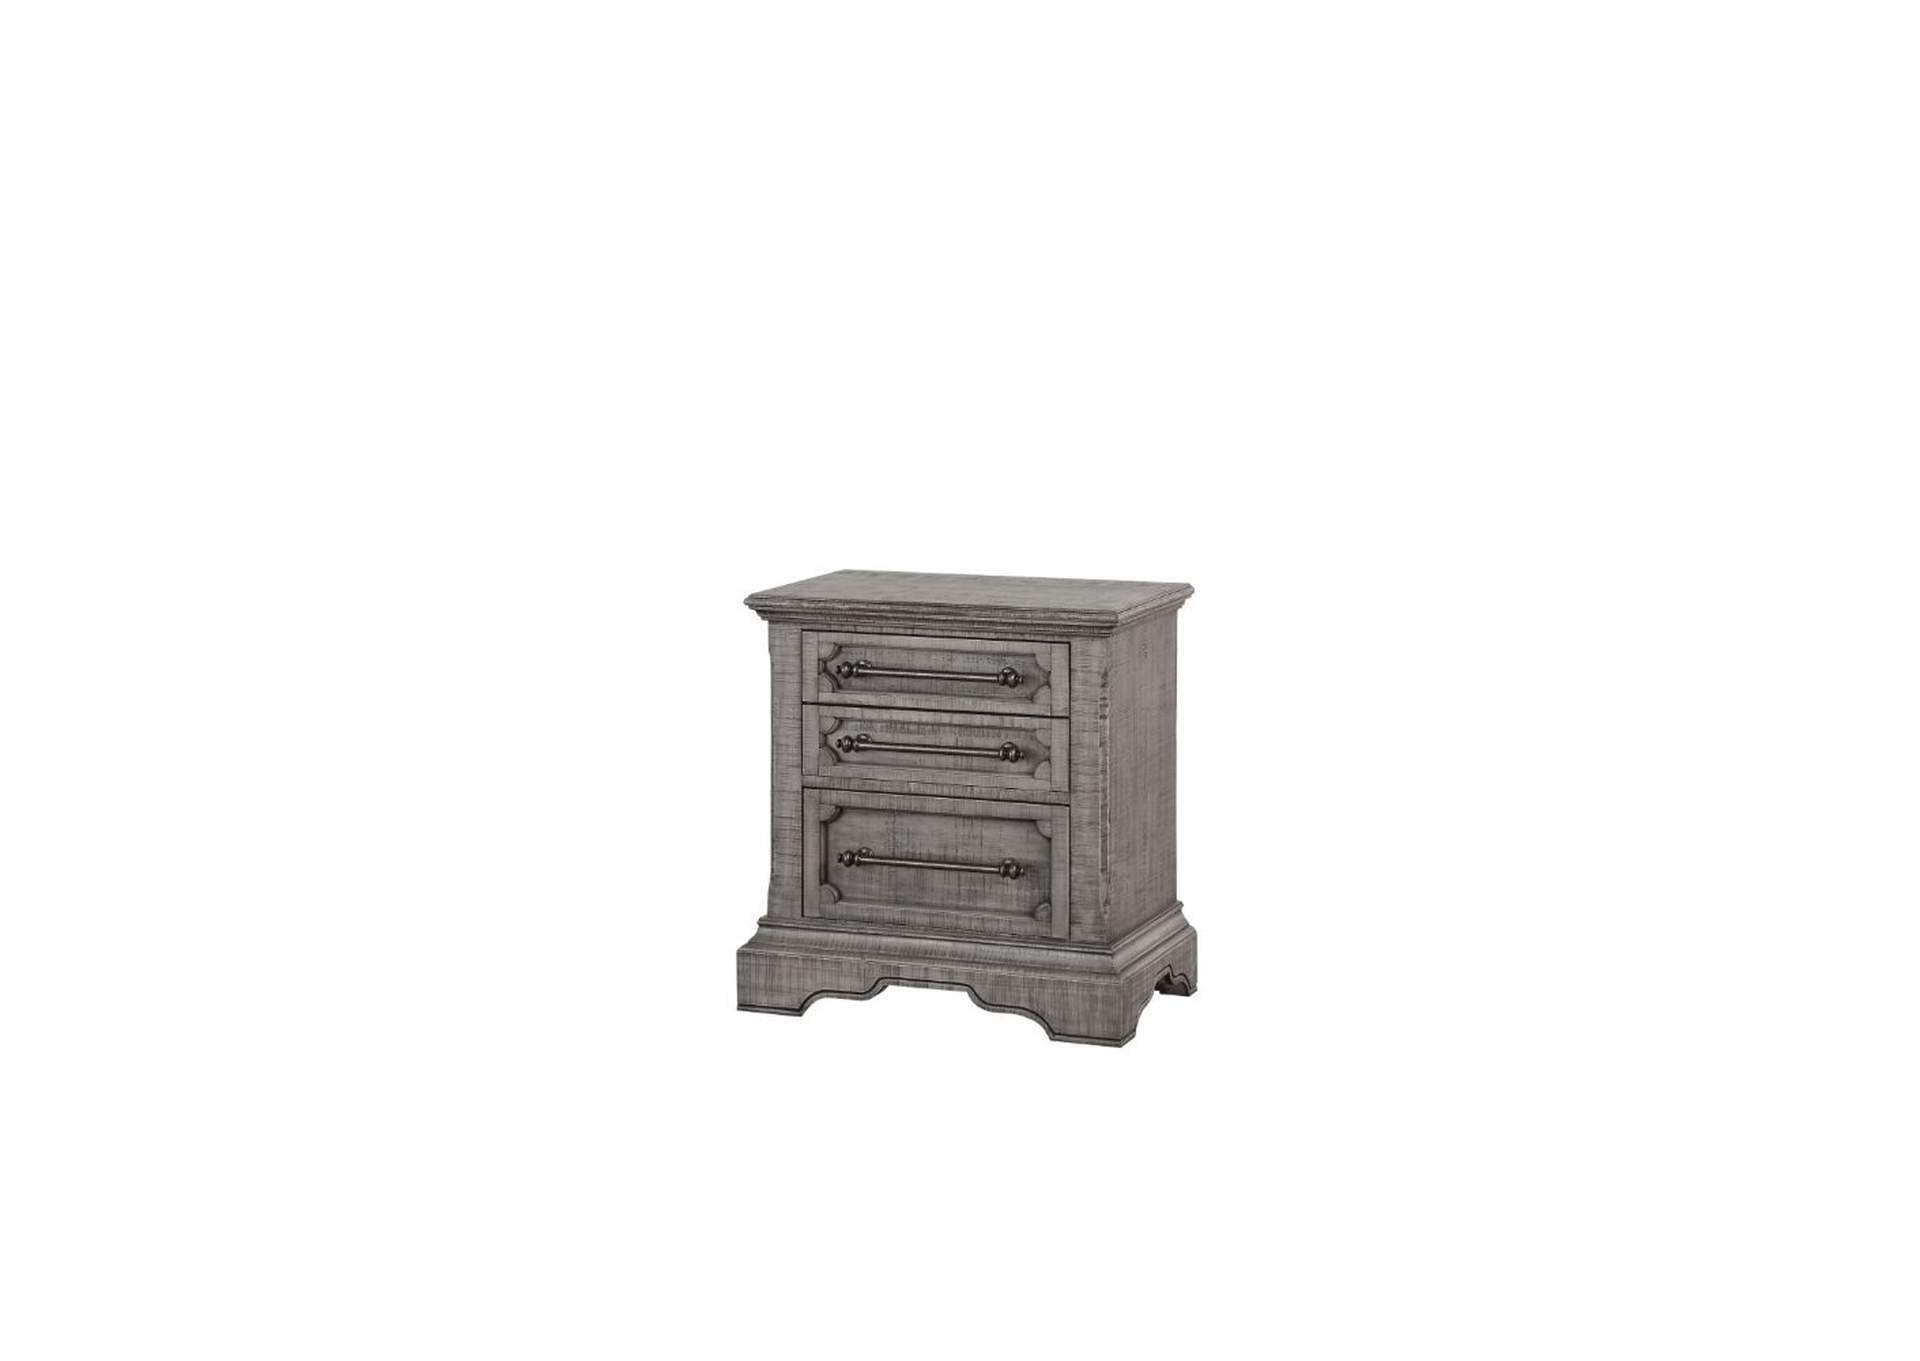 Artesia Salvaged Natural Nightstand,Acme